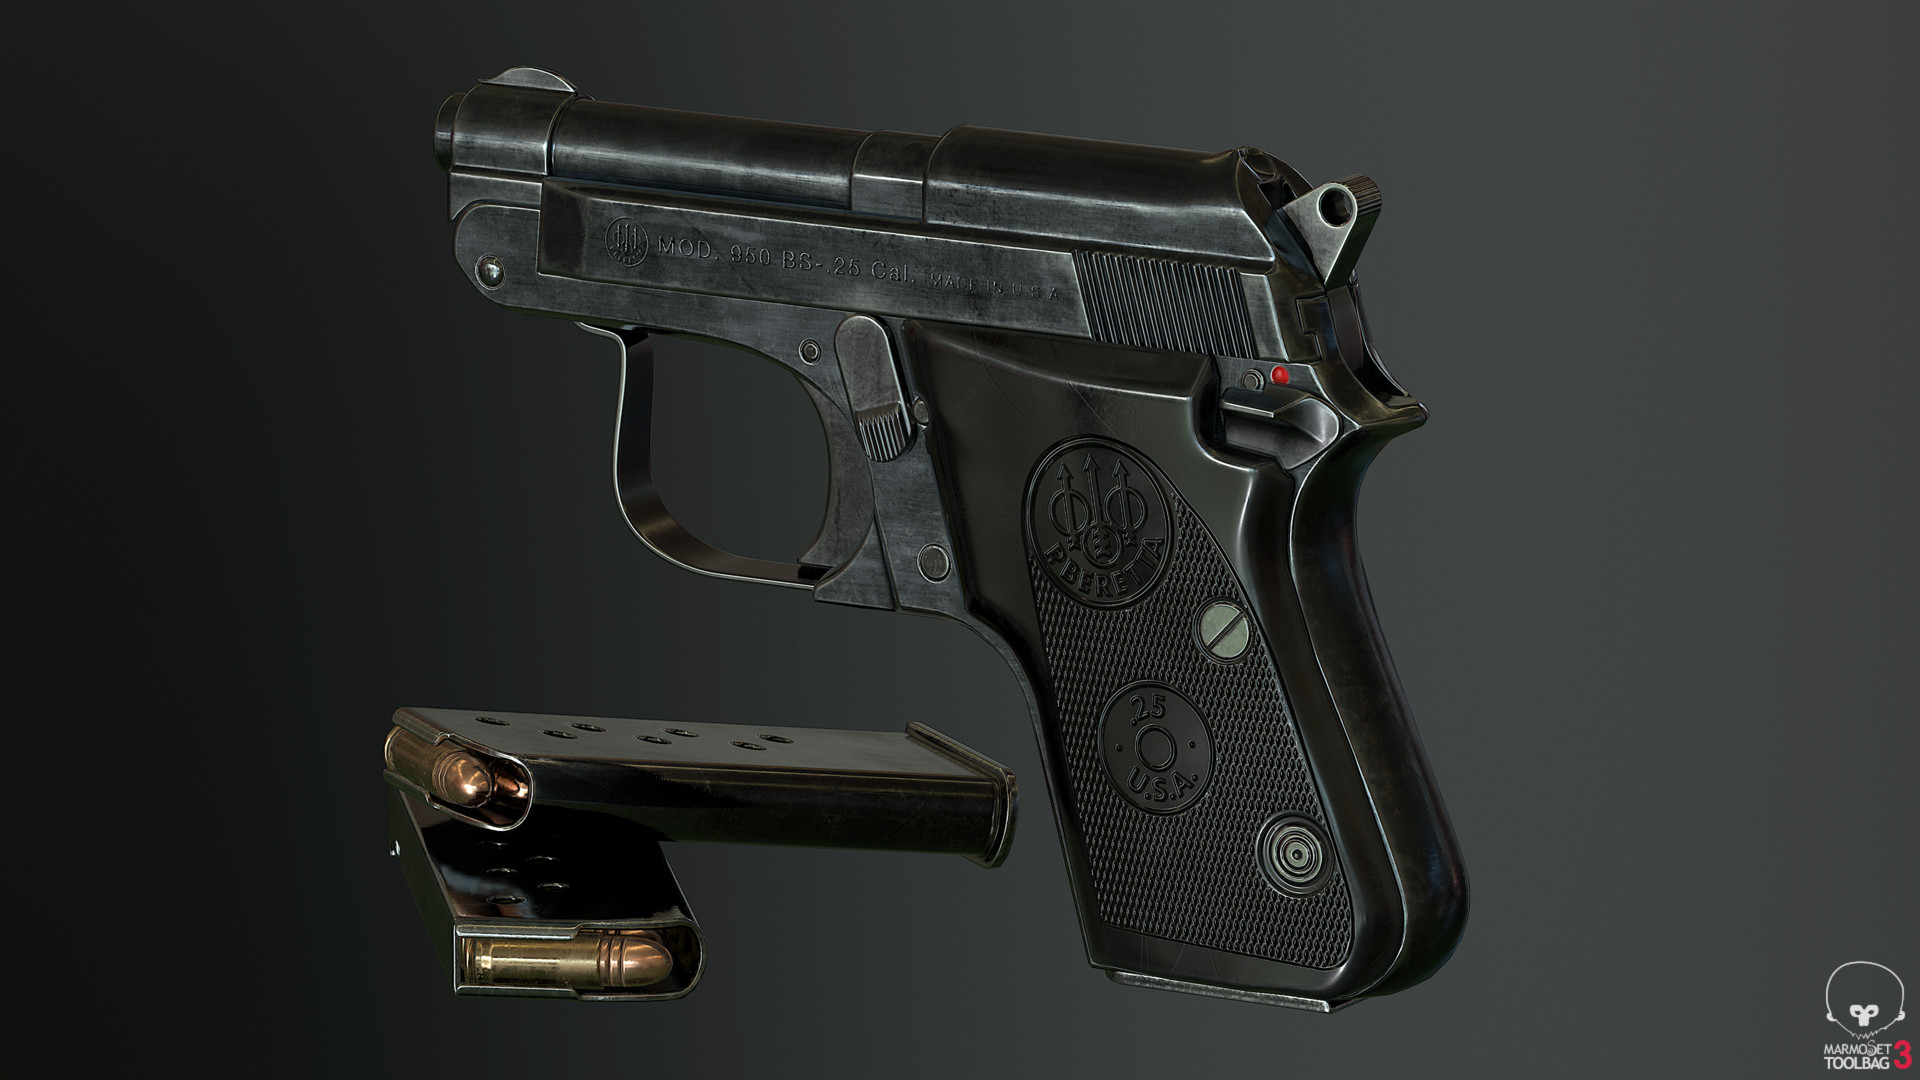 ArtStation - Beretta 950 Jetfire - Low Poly, Donnie Oliver